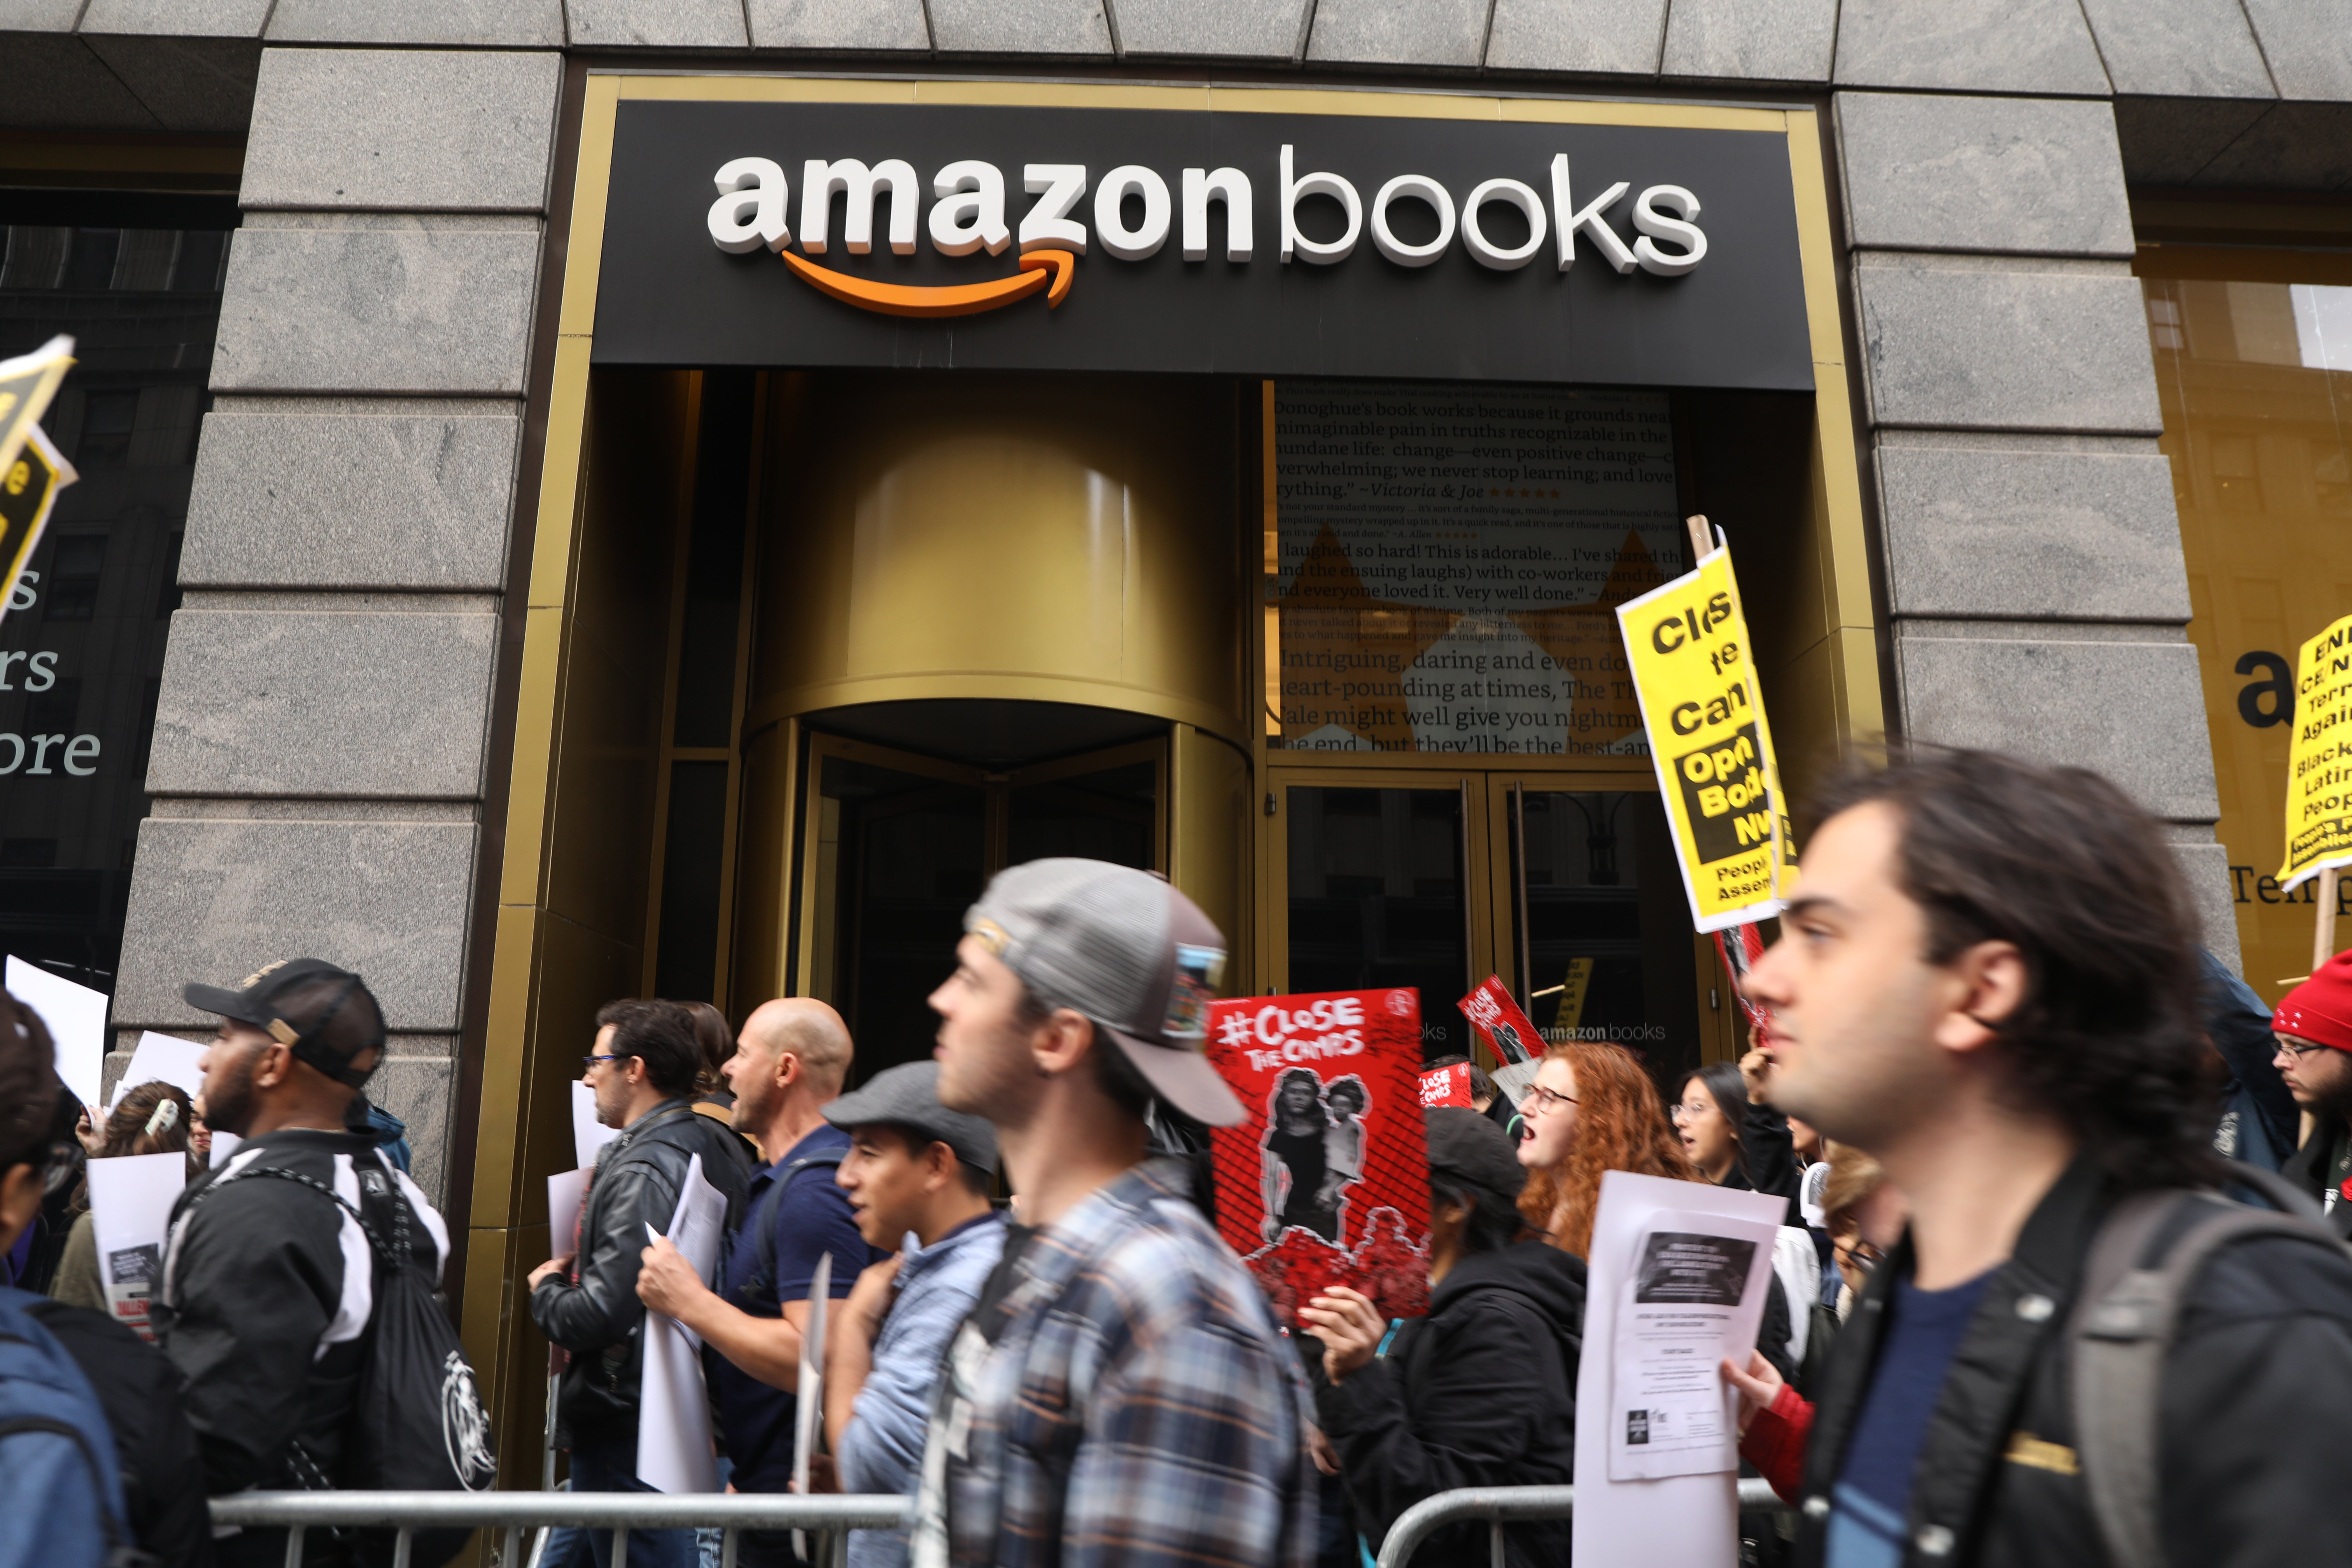 NEW YORK, NEW YORK - OCTOBER 11: Immigrant rights protesters participate in a demonstration to draw attention to tech companies involvement in the immigration enforcement system on October 11, 2019 in New York City. The activists walked and demonstrated in front of an Amazon store and the offices of Salesfore, two tech companies that have worked in various capacities with Immigration and Custom Enforcement (ICE). (Photo by Spencer Platt/Getty Images)